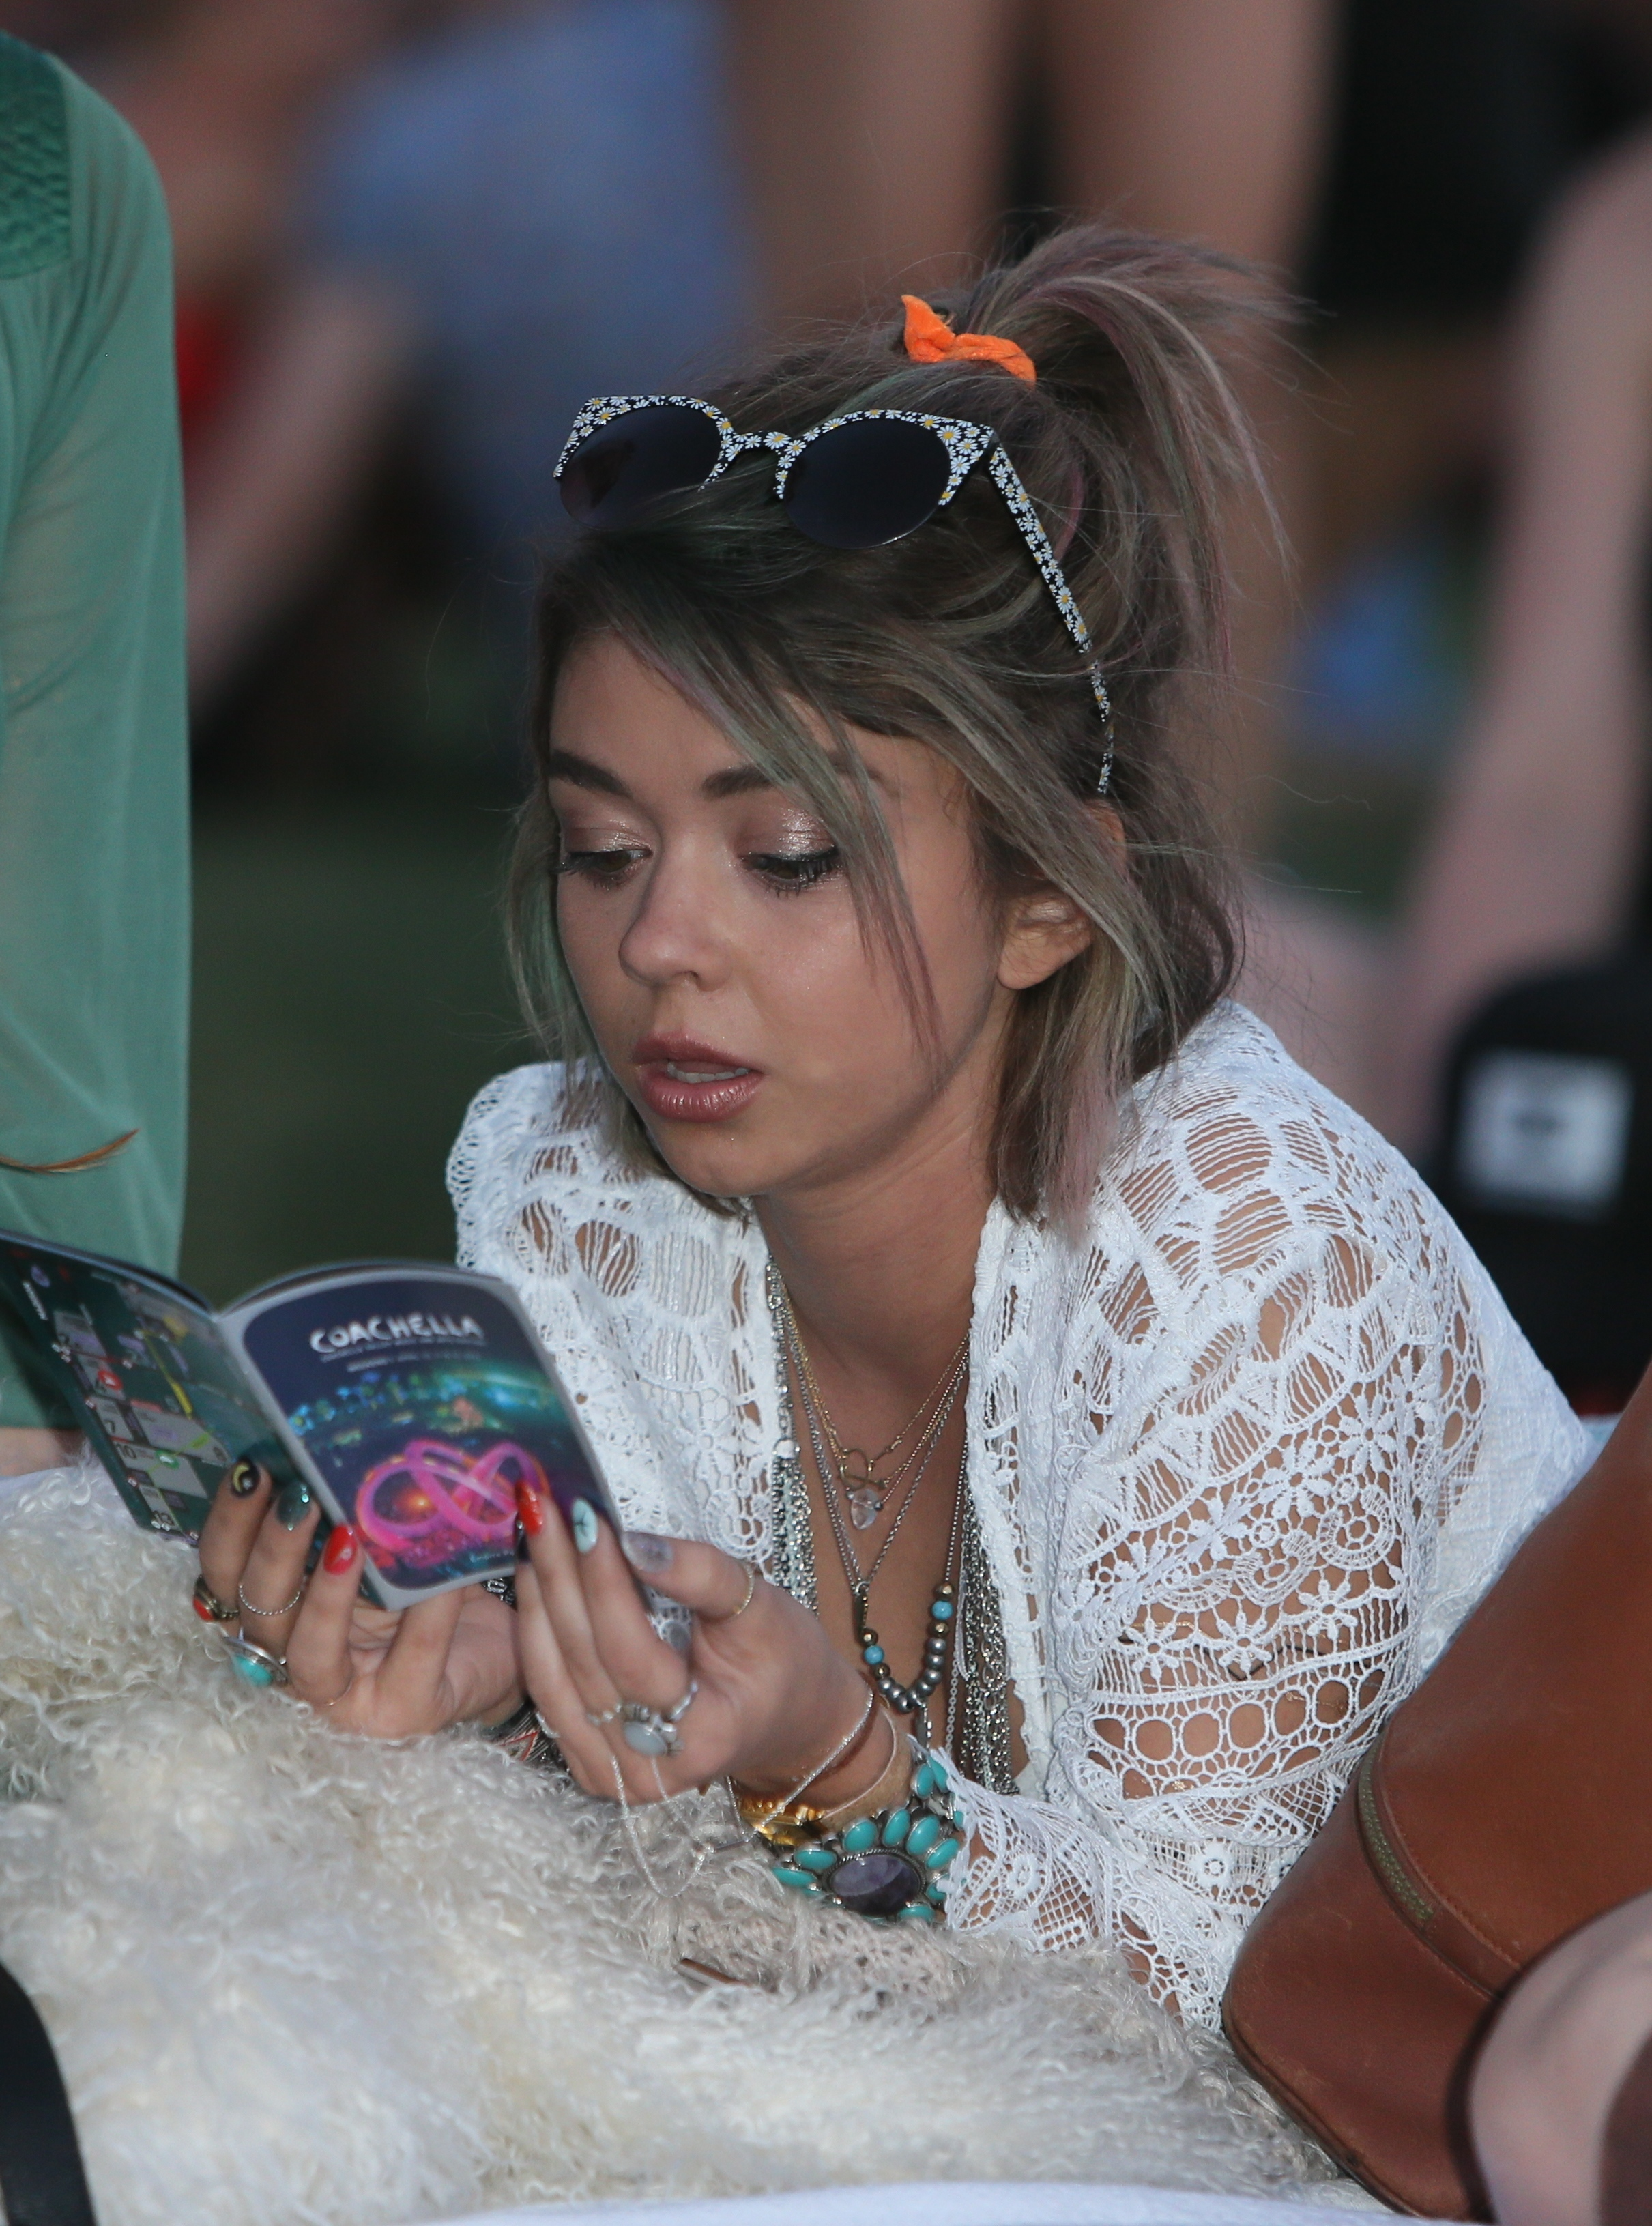 Sarah Hyland on why she loves Coachella and other music festivals: